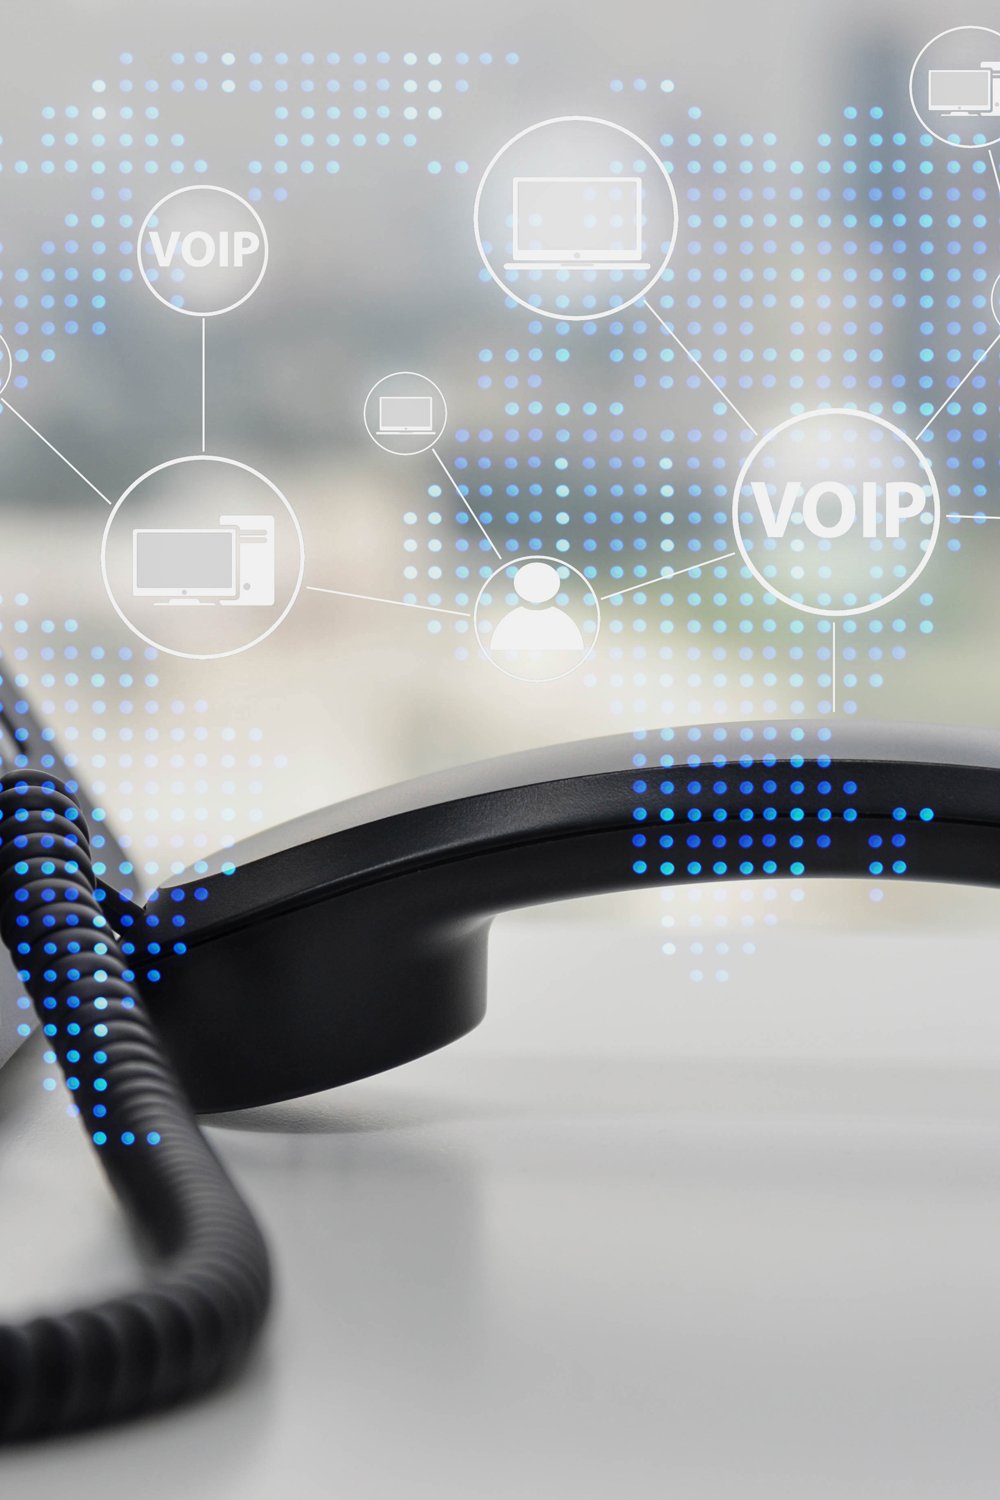 Business VOIP Houston